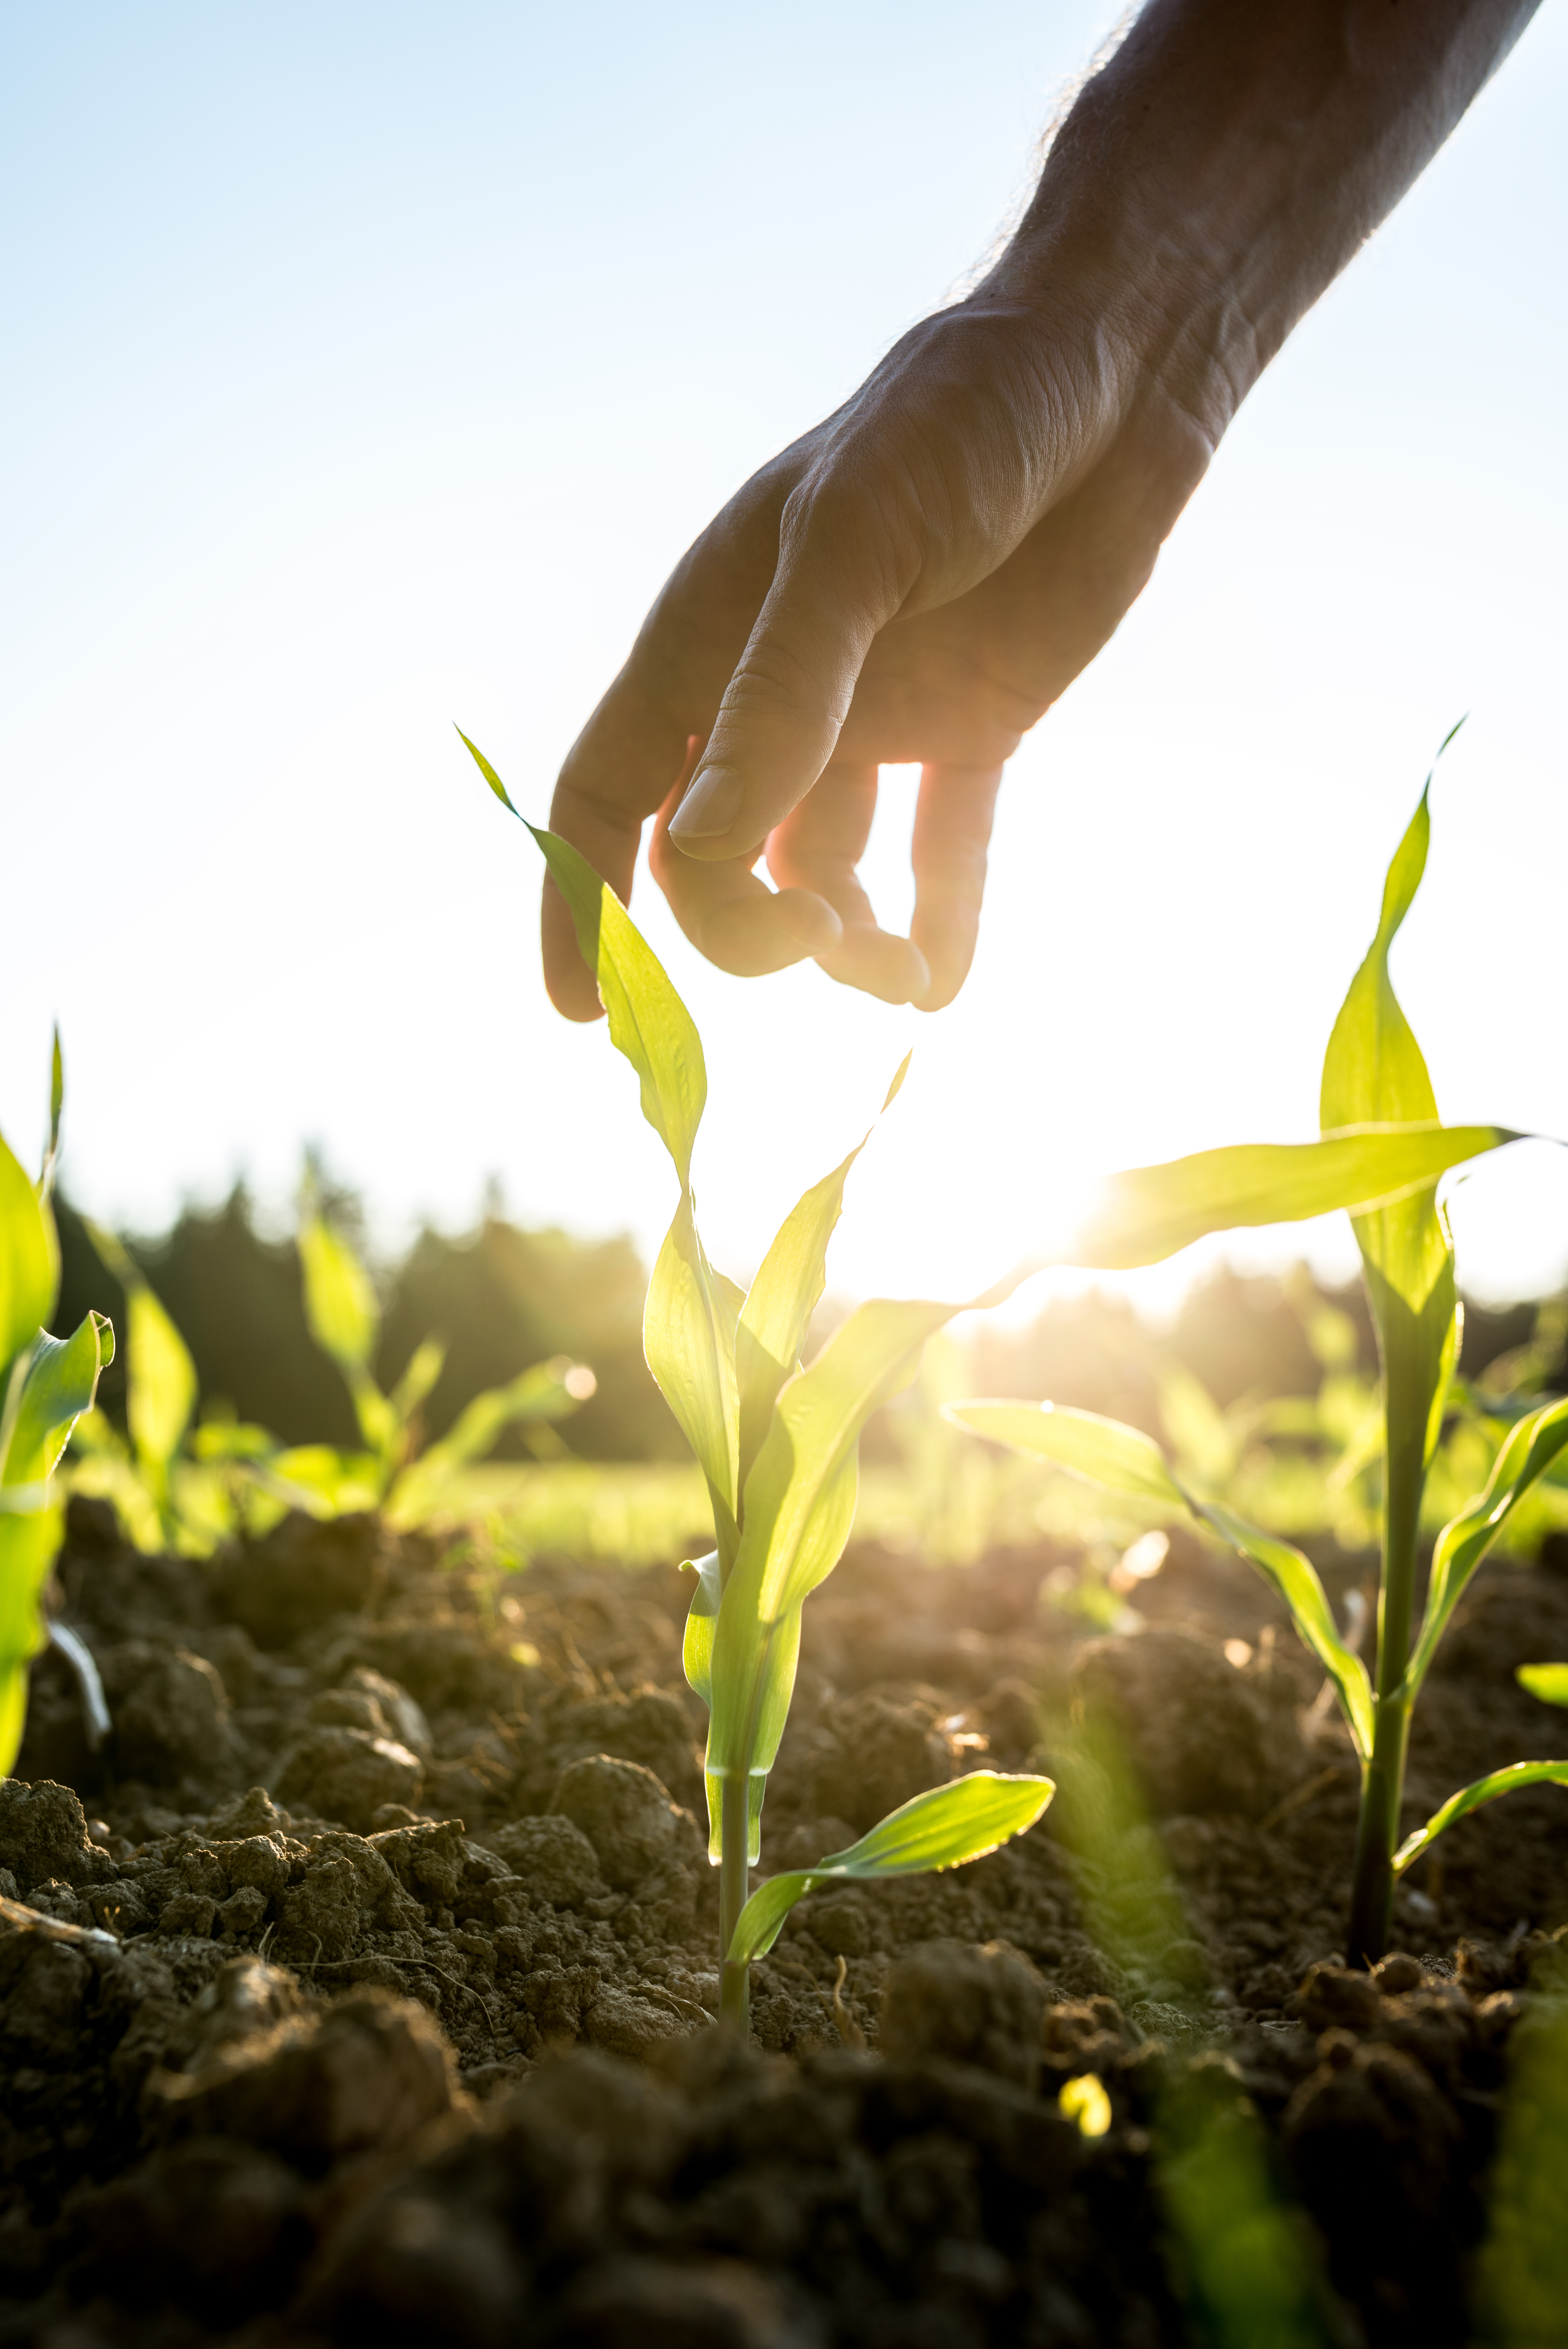 Male hand reaching down to a young maize plant growing in an agricultural field backlit by a bright